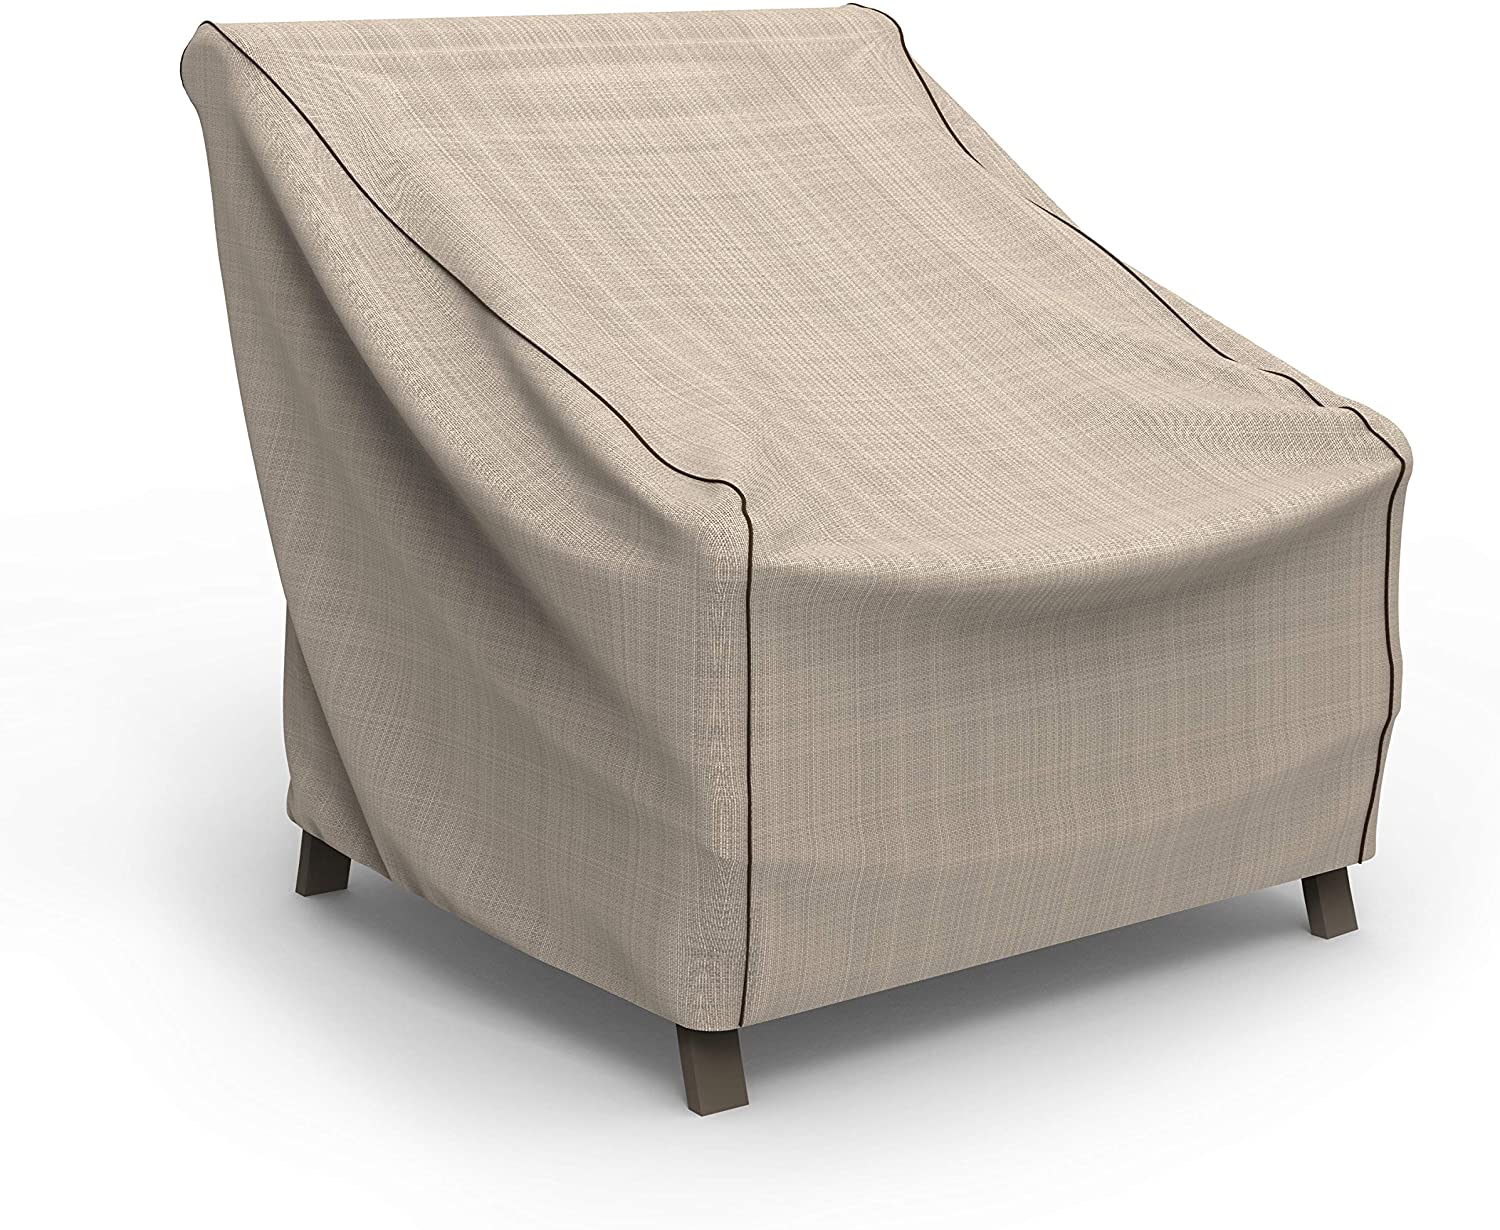 Max 45% OFF EmpirePatio Tan Animer and price revision Tweed Patio Large Cover Chair